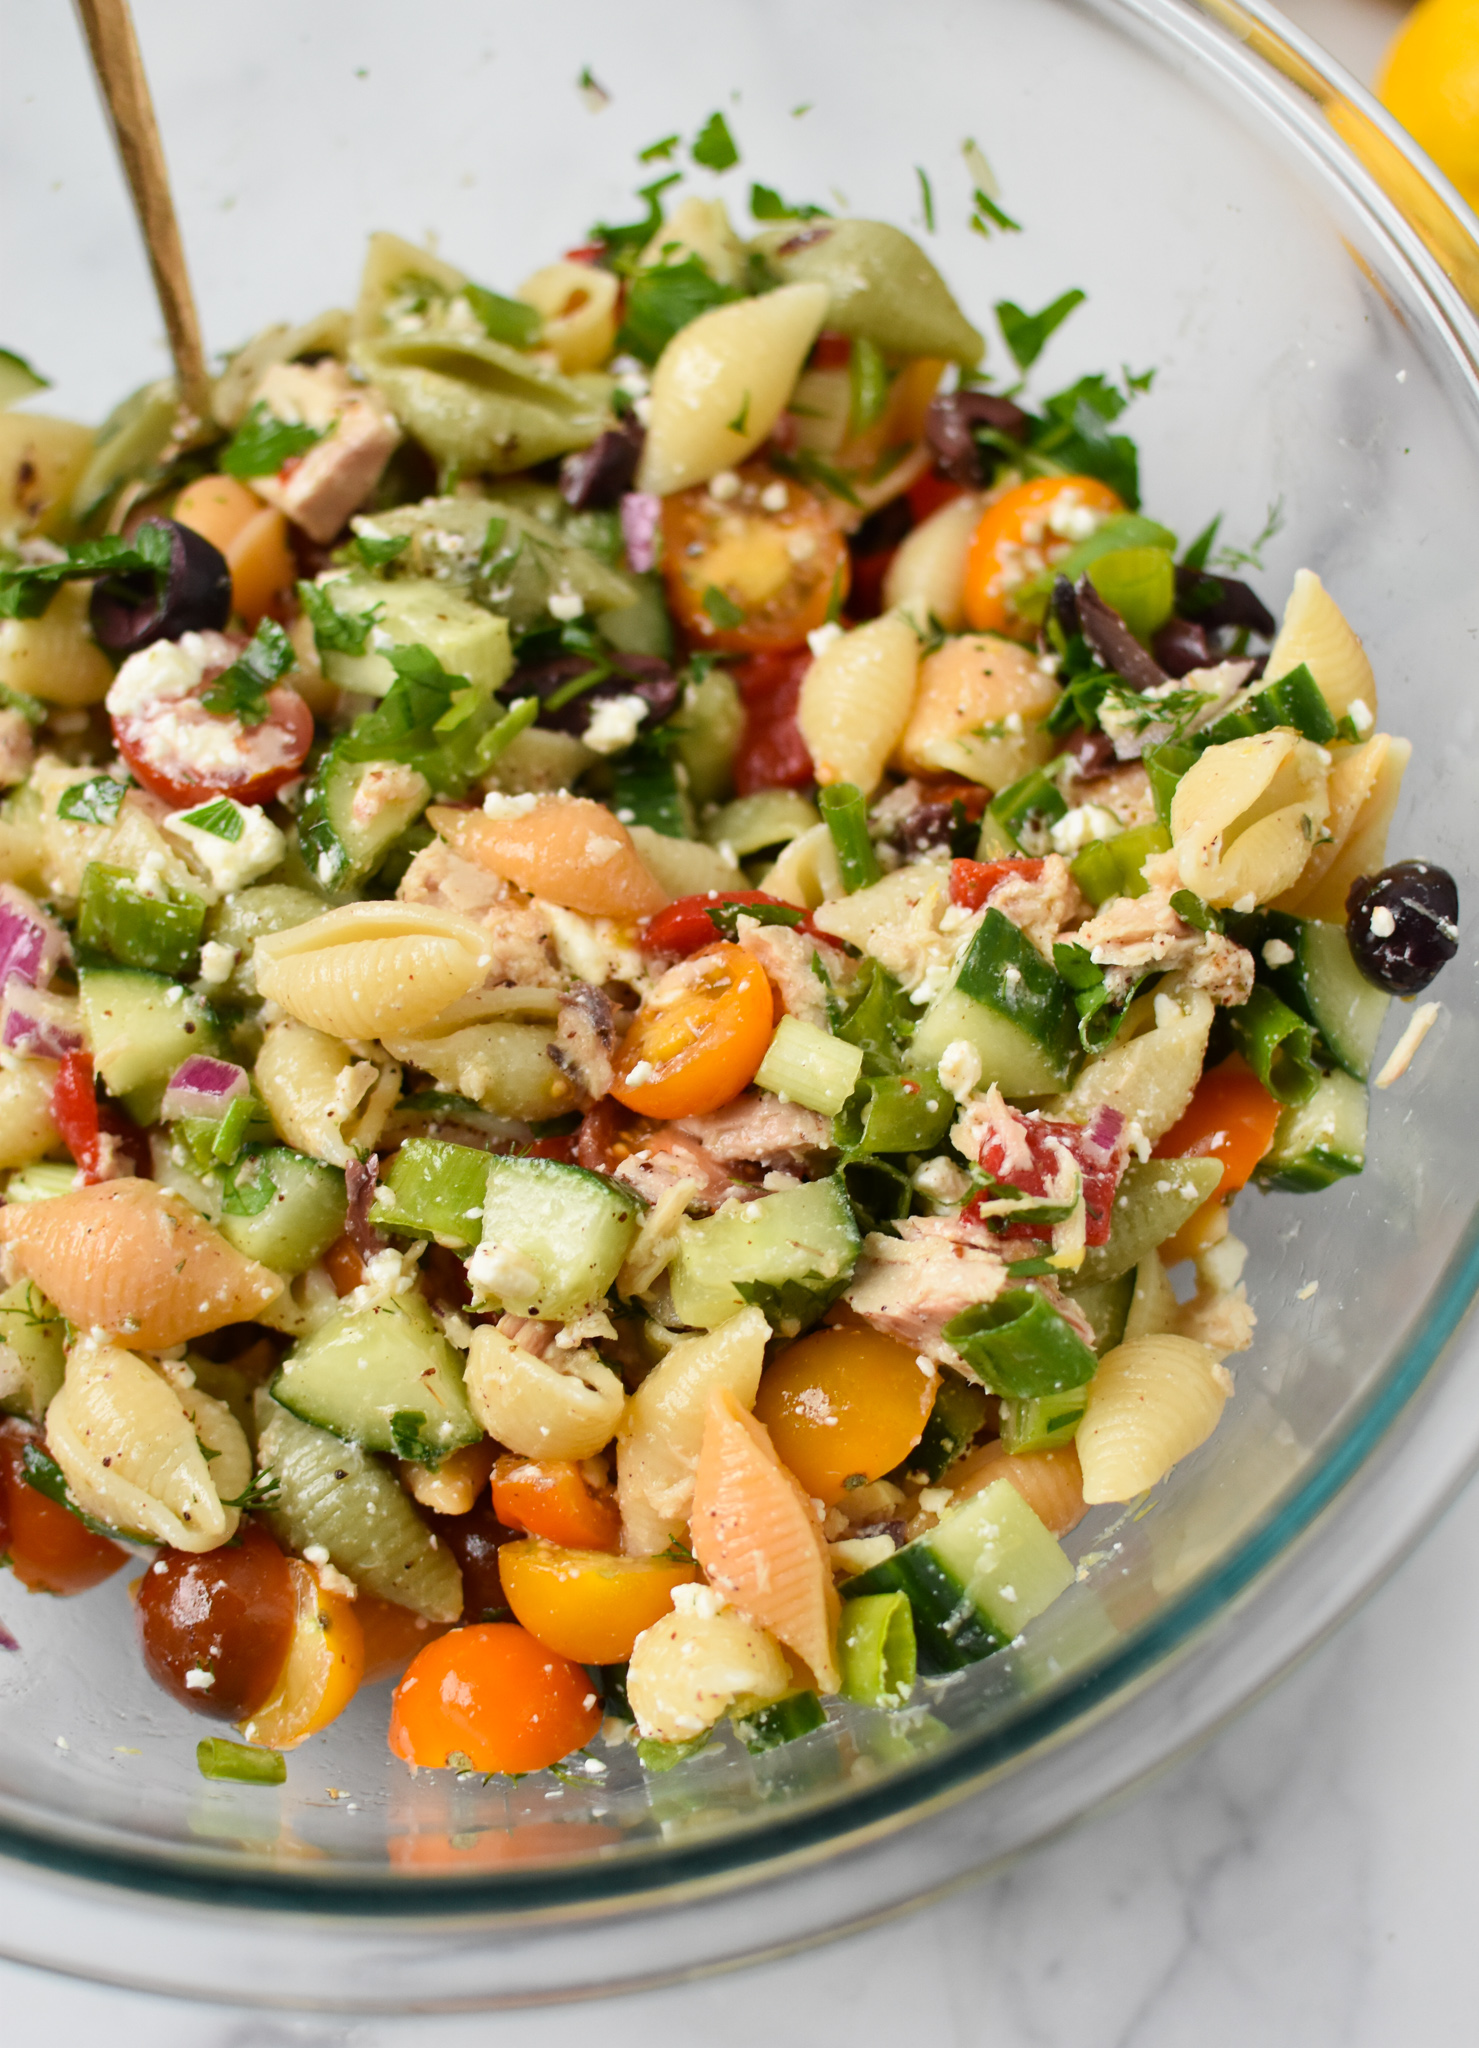 Mediterranean Tuna Pasta Salad in a clear bowl.